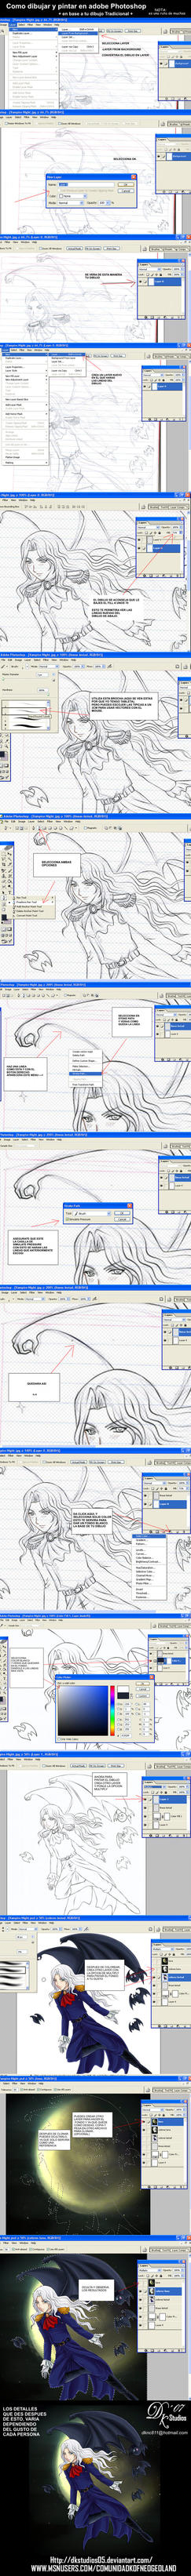 Tutorial lineas y color by noticias